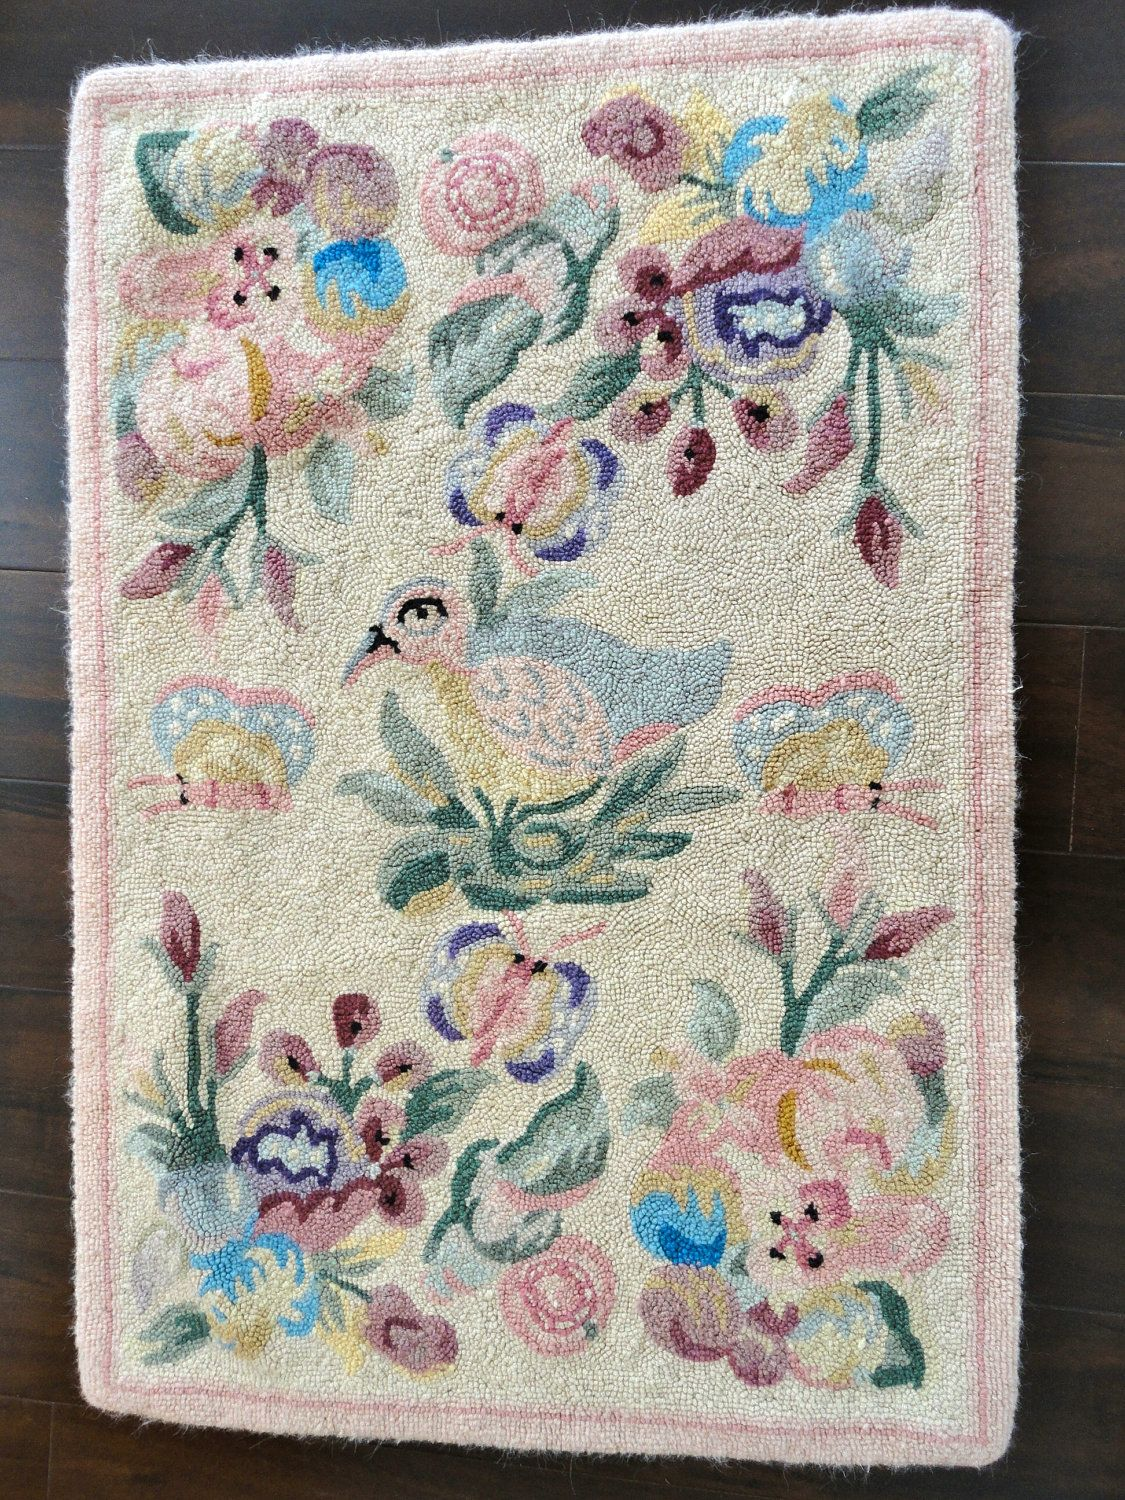 Hooked Rugs   Vintage Hooked Rug In Wool with Pastels, Flowers, Butterflies and a ...